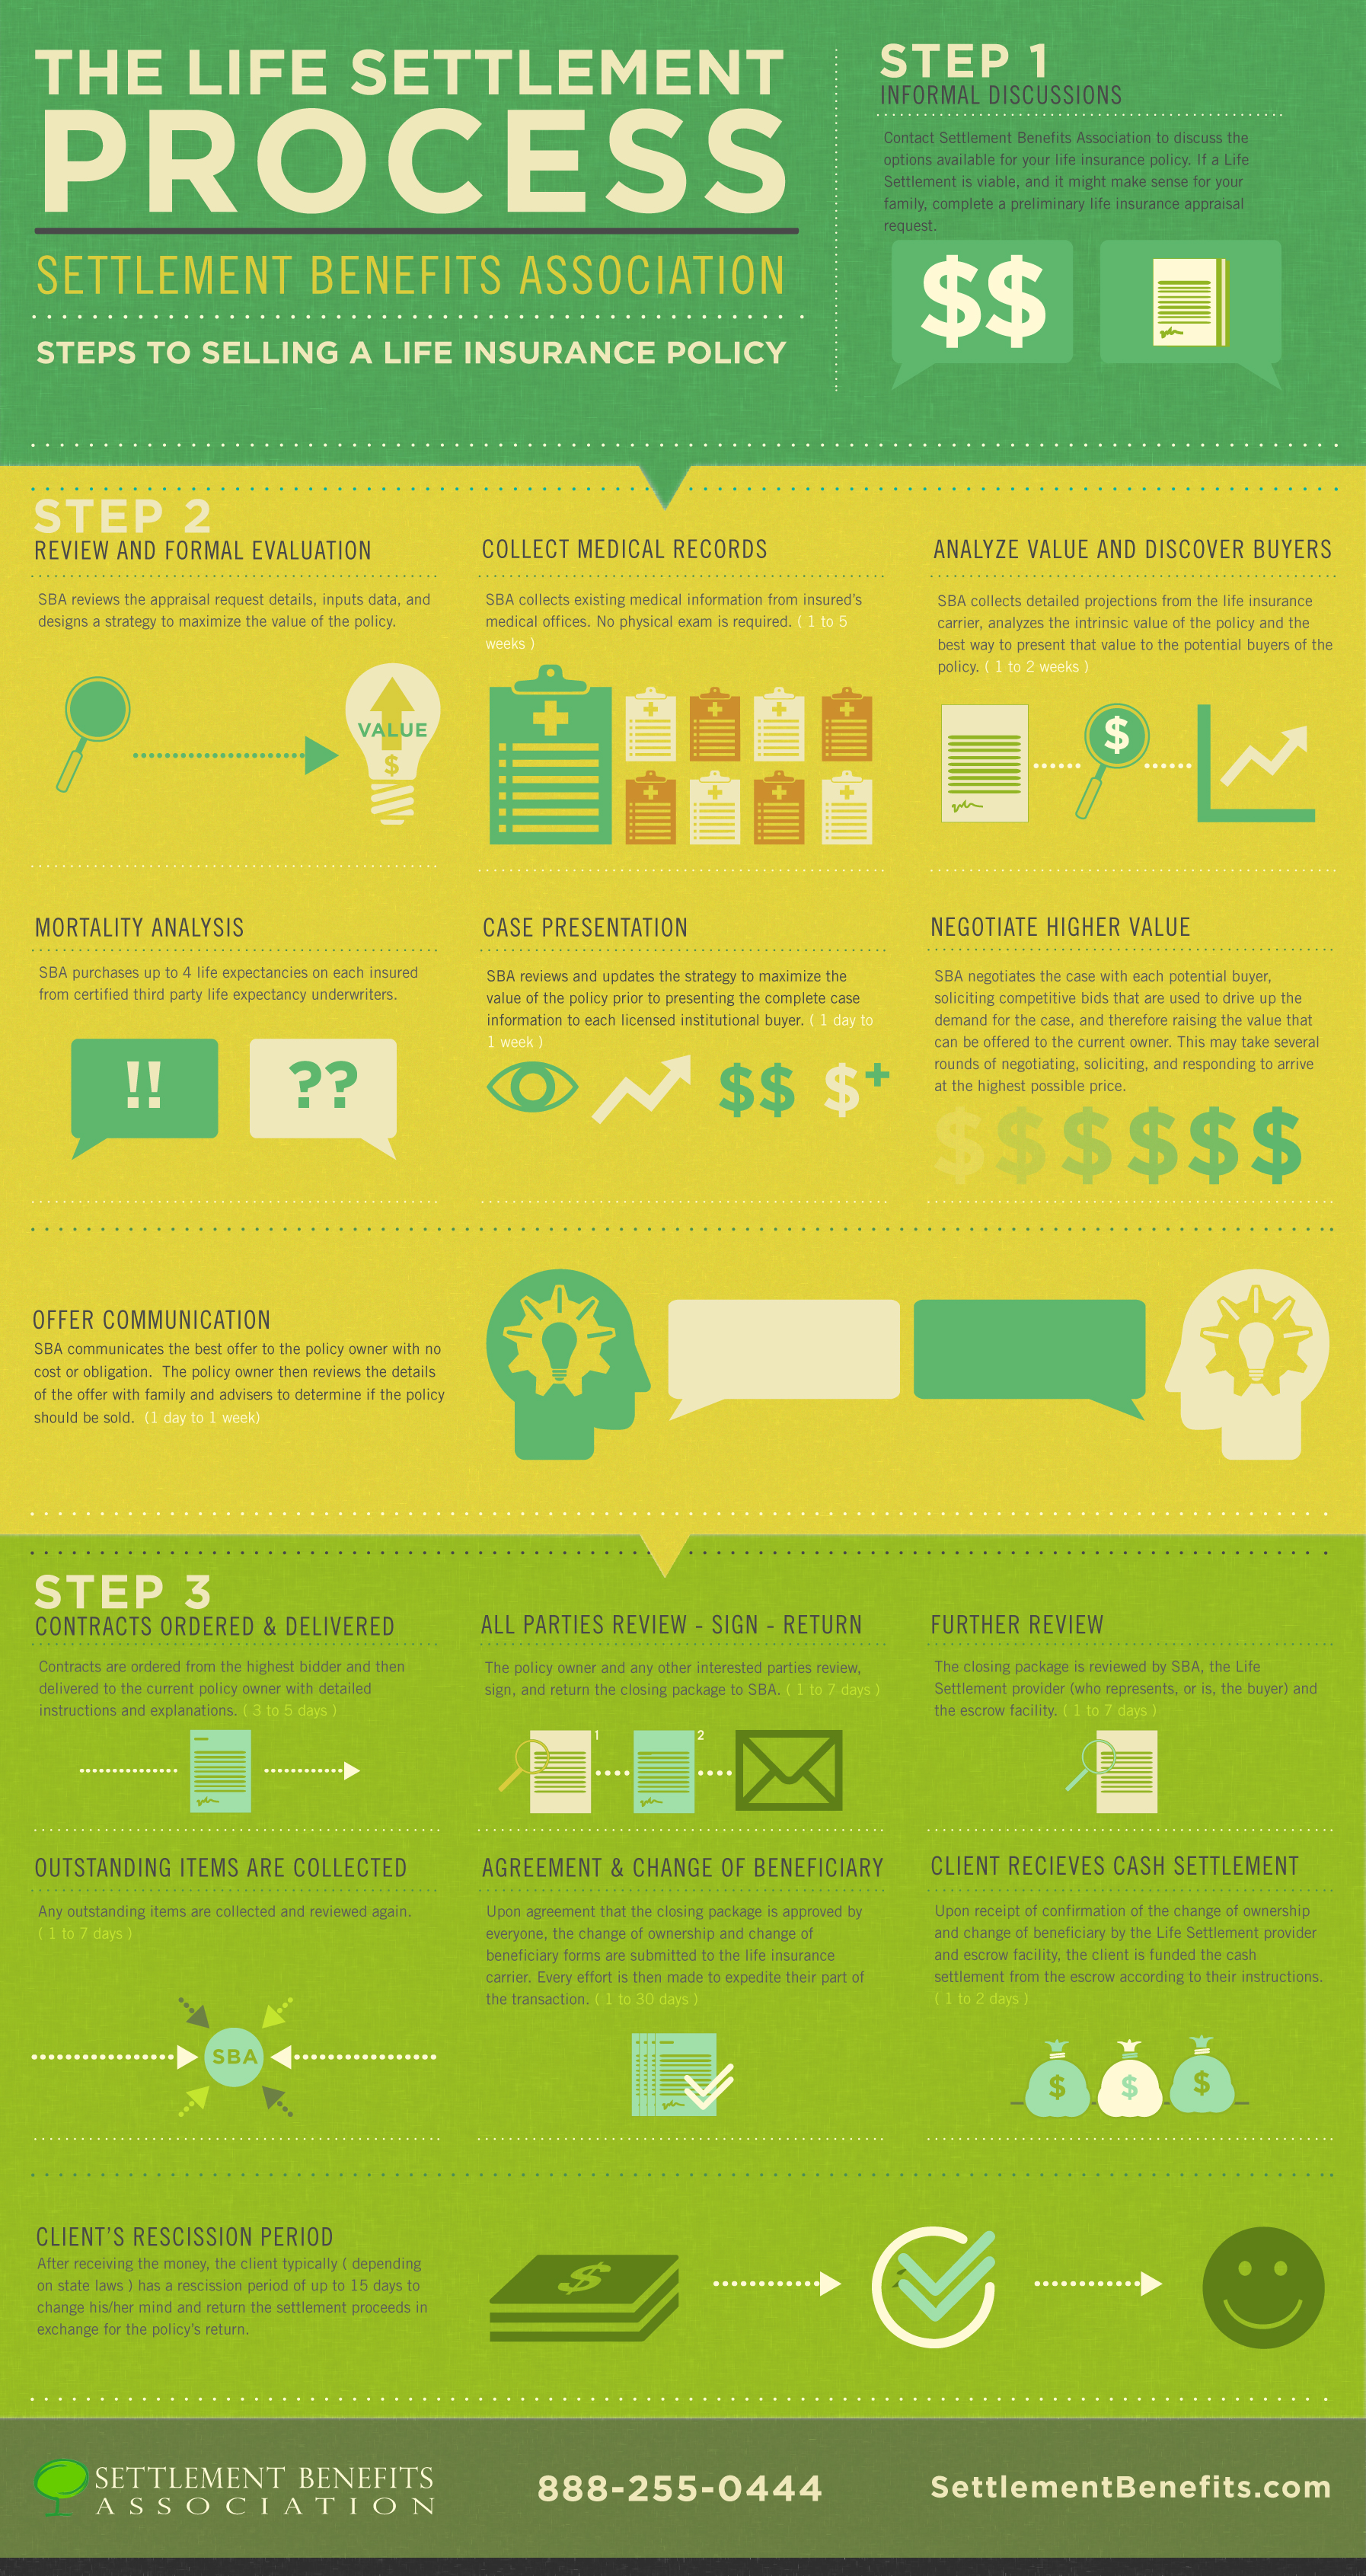 Explore the steps to sell a life insurance policy infographic.